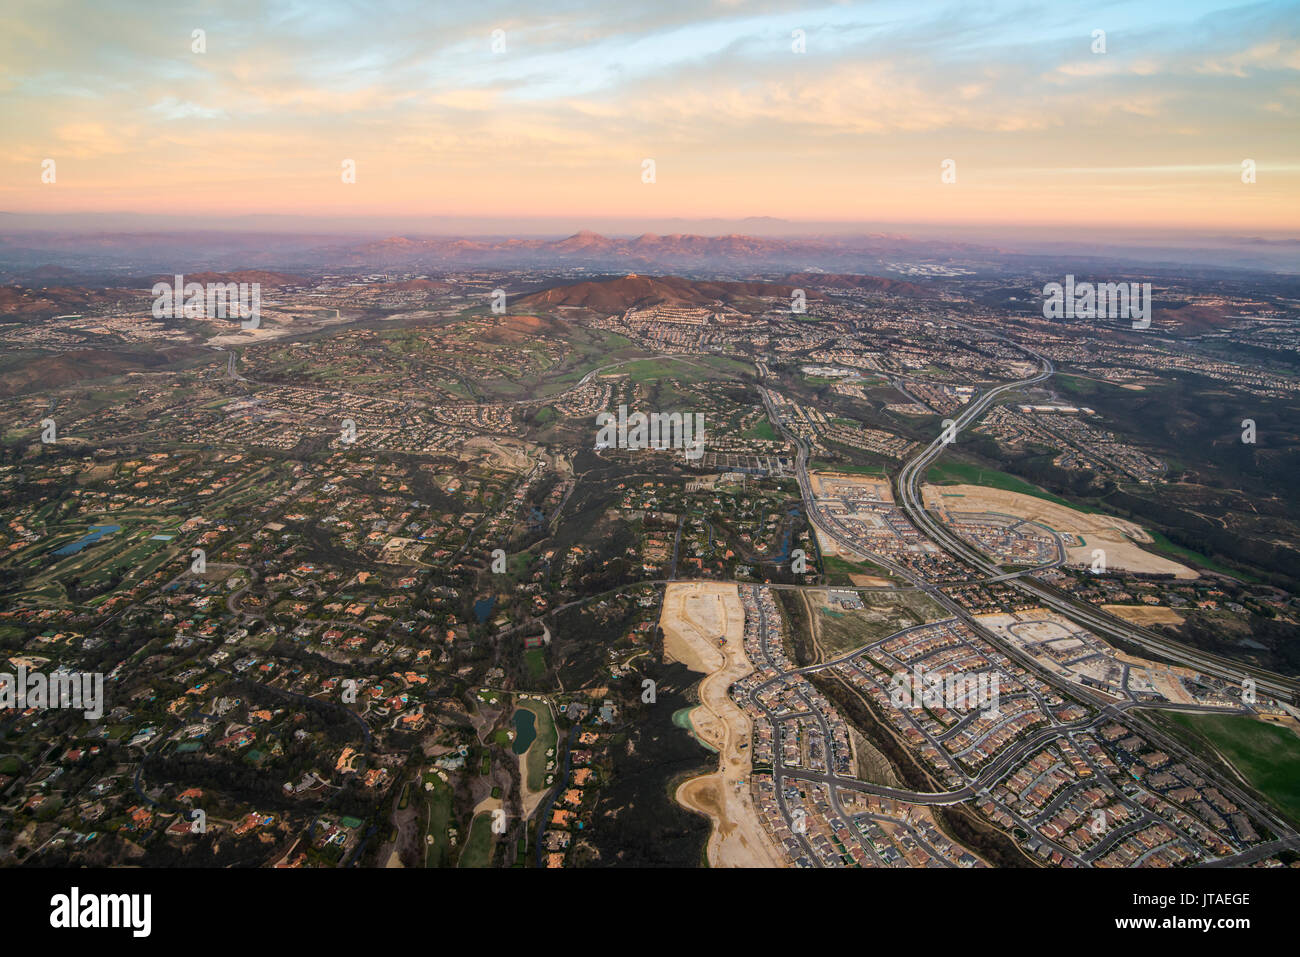 Aerial over Encinitas from a hot air balloon, California, United States of America, North America Stock Photo